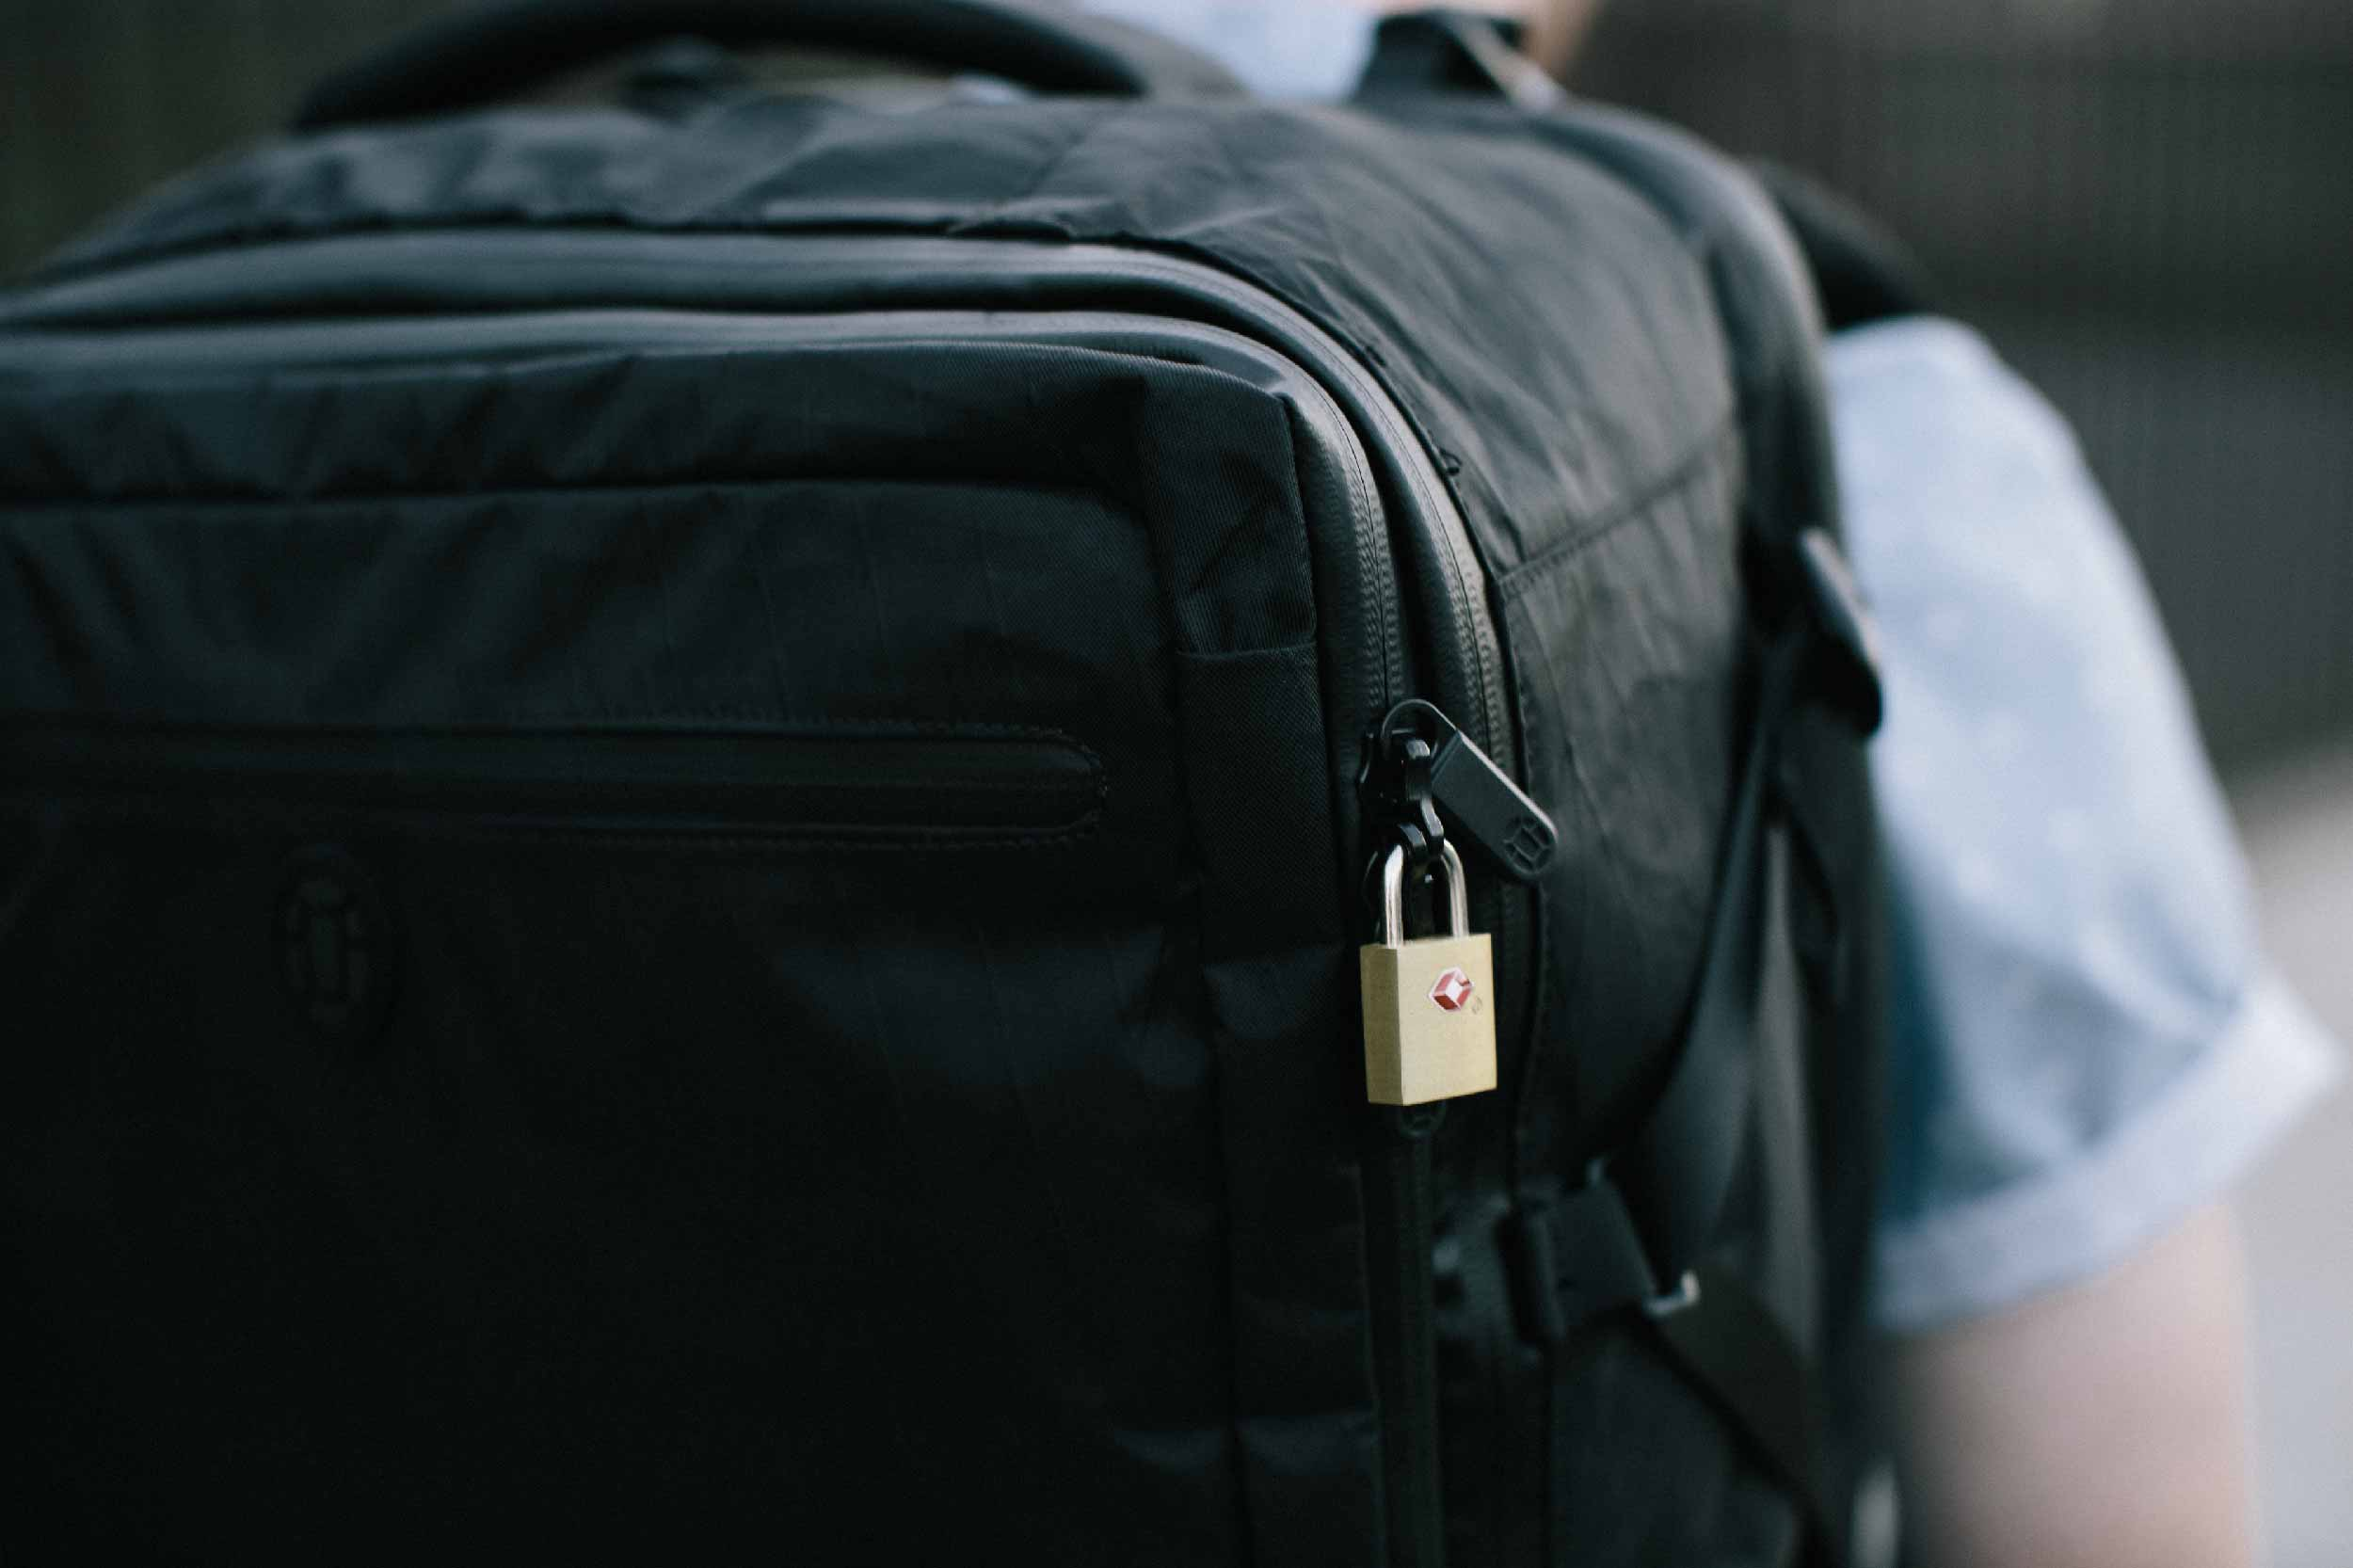 Bag Safety: 4 Rules to Secure Your Stuff